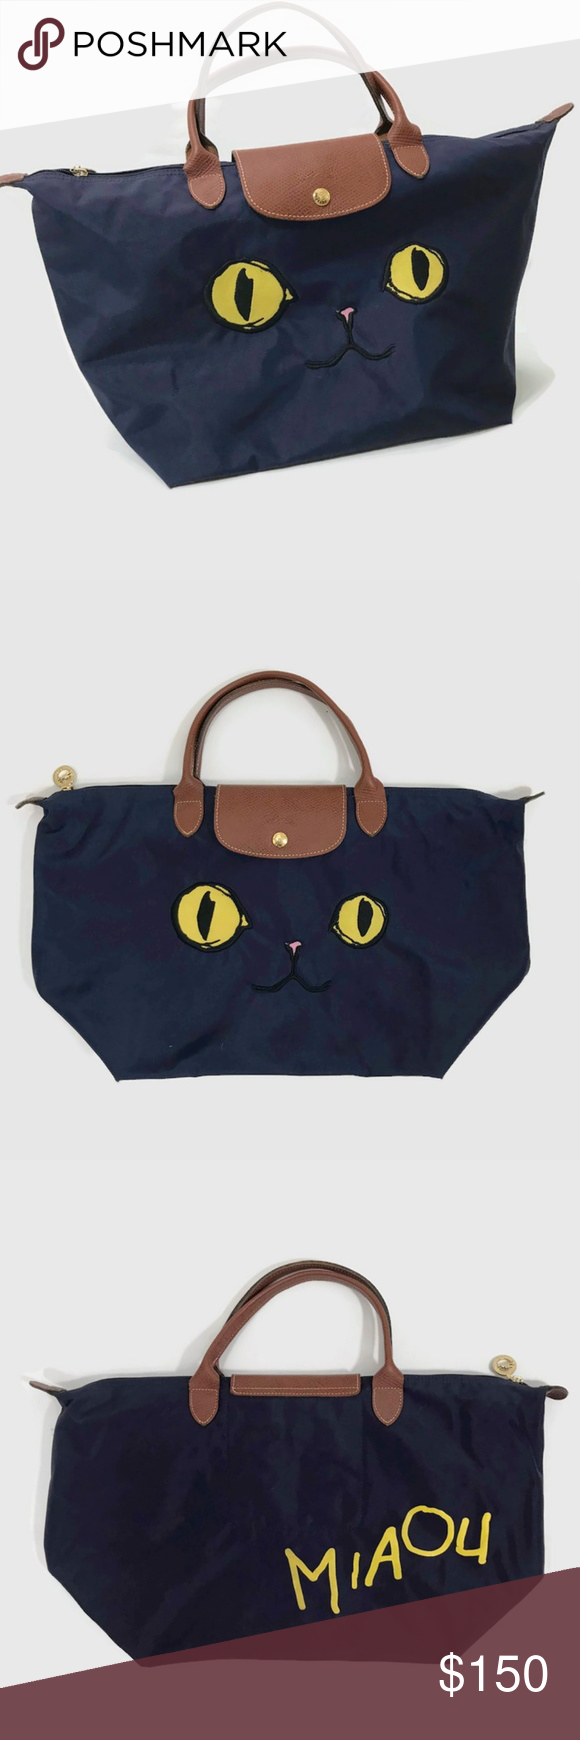 Longchamp LePliage Miaou Limited Edition Cat Bag Authentic Longchamp  LePliage Miaou Limited Edition Cat Tote Bag 391722c55f389